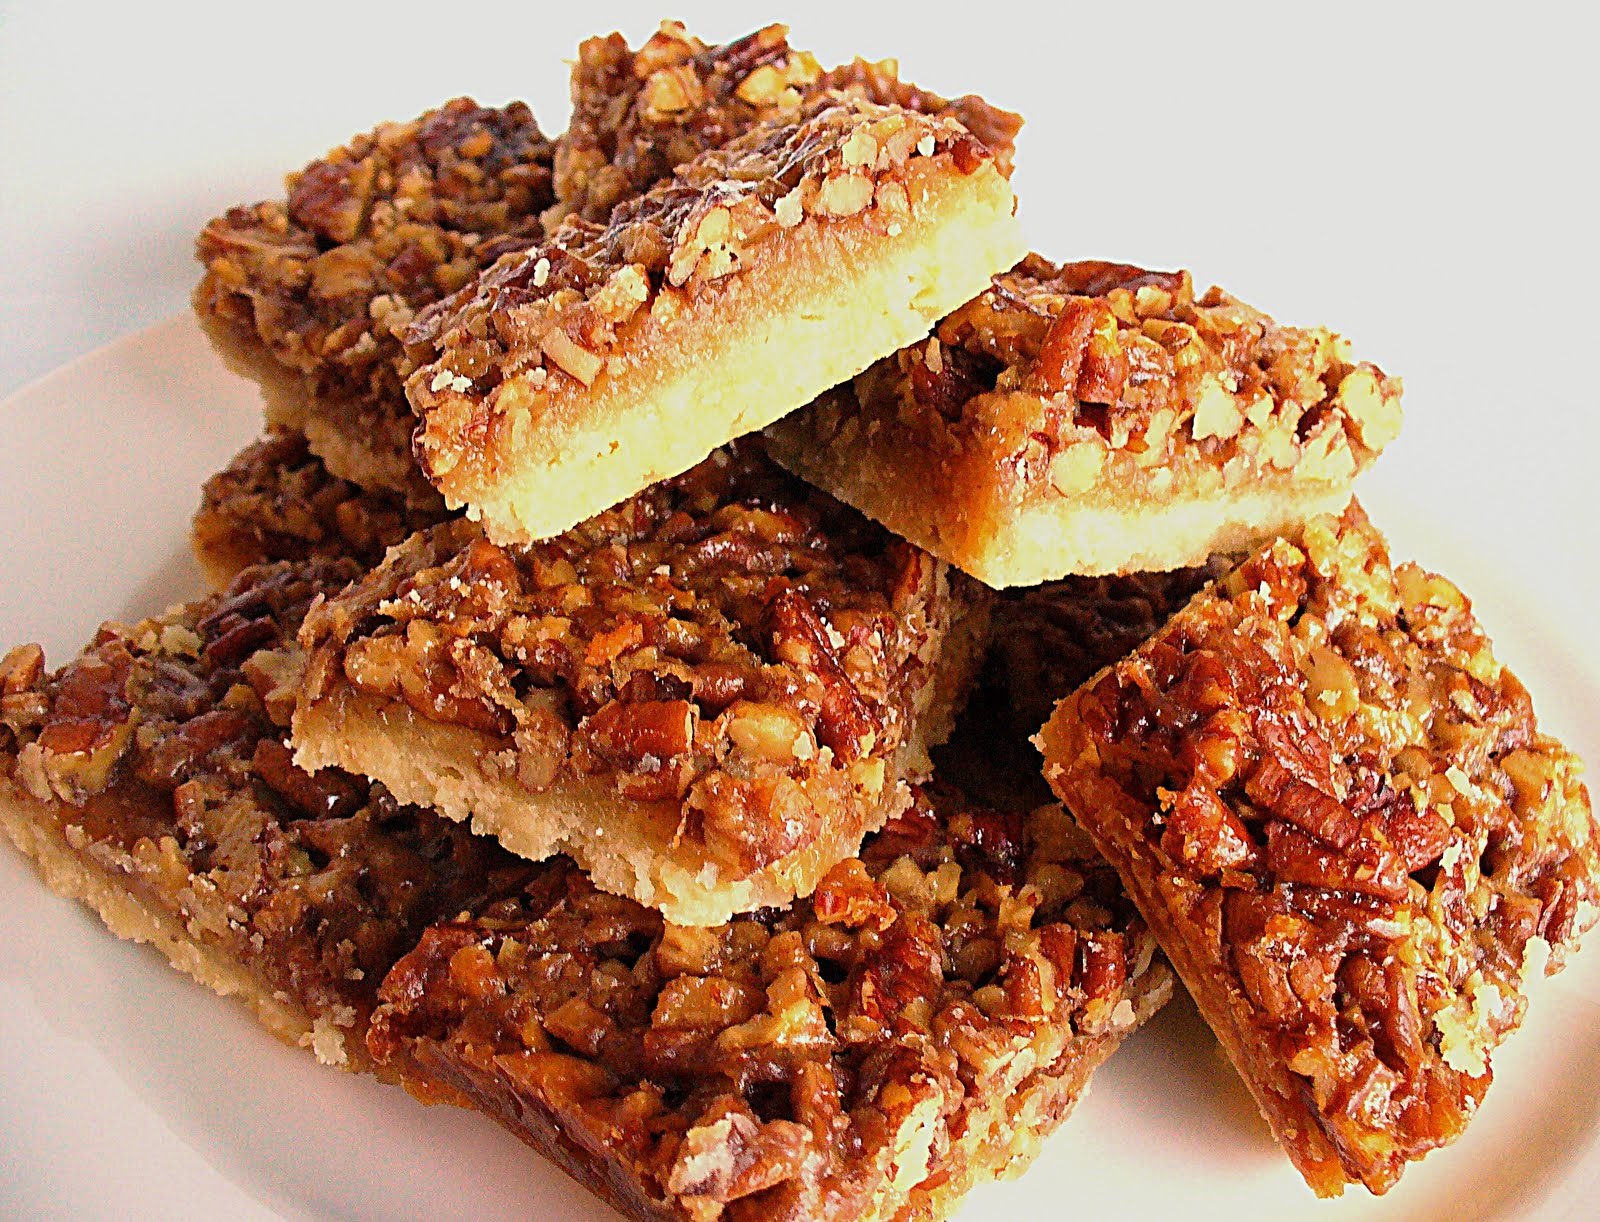 The Lonely Baker: Caramel Pecan Bars